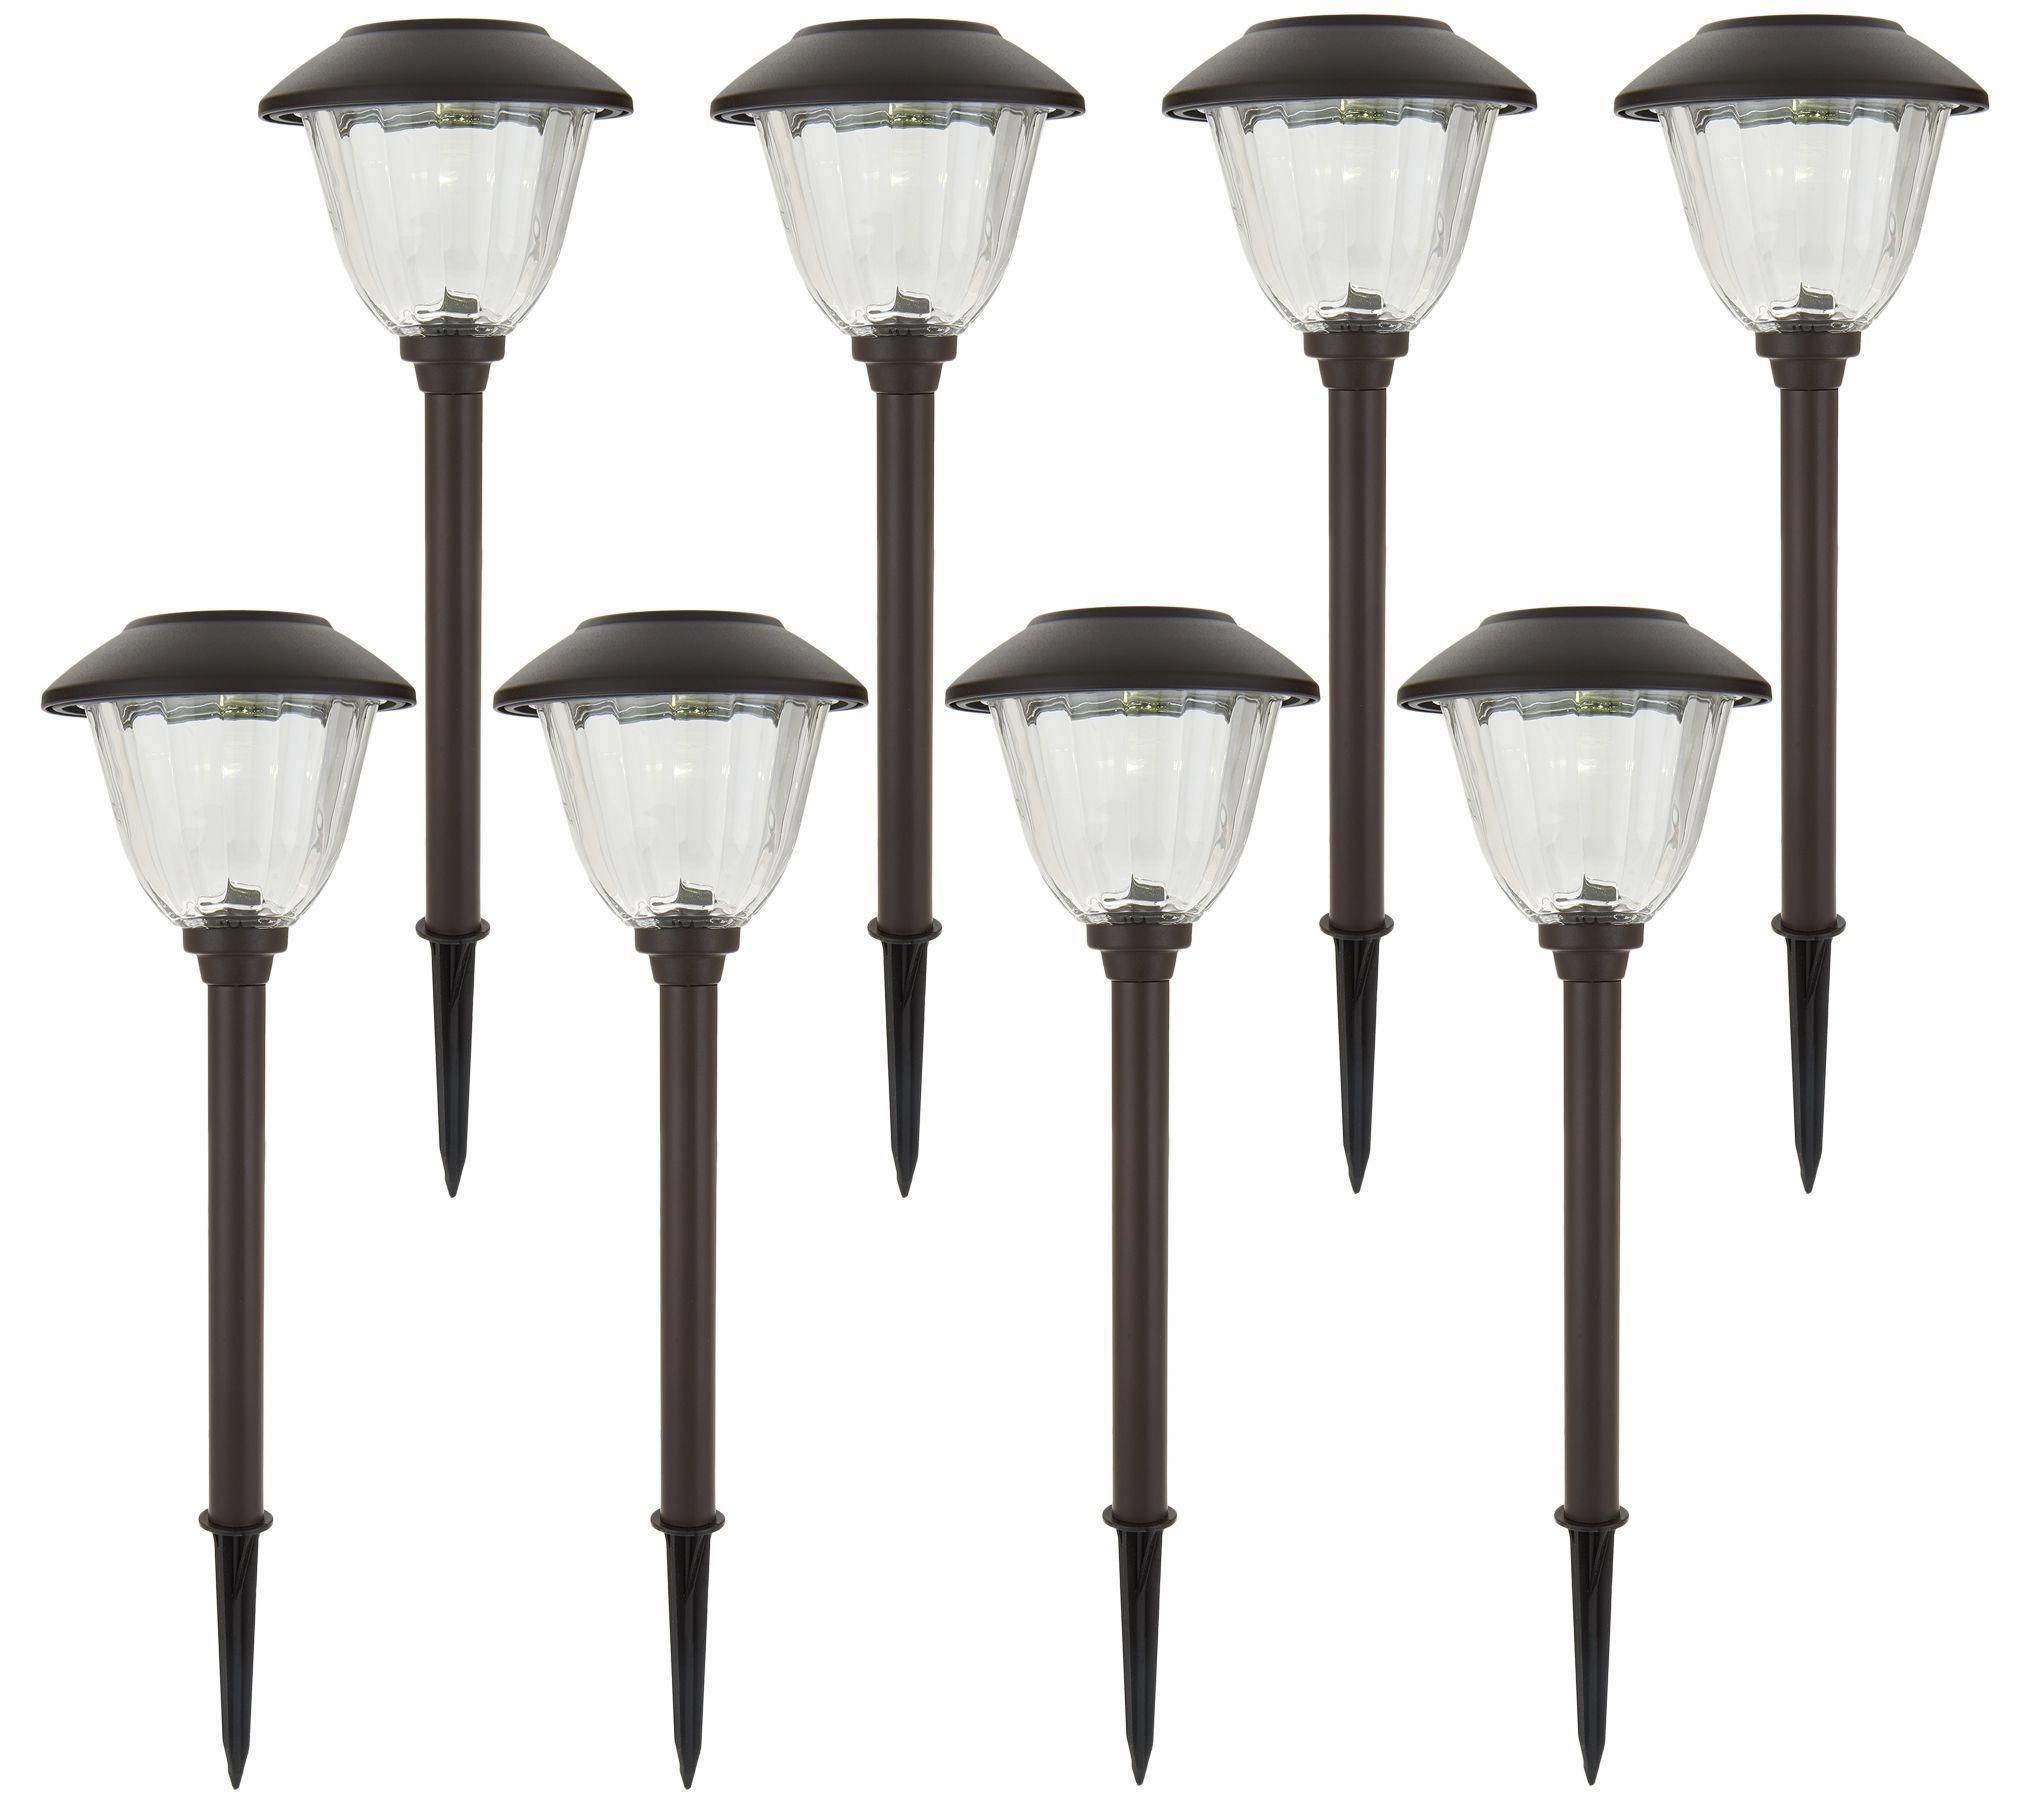 Energizer 8 Piece Solar Landscape Light Set Page 1 Qvc Com Howtogetridofyourbackpain Landscape Lighting Design Landscape Lighting Backyard Lighting